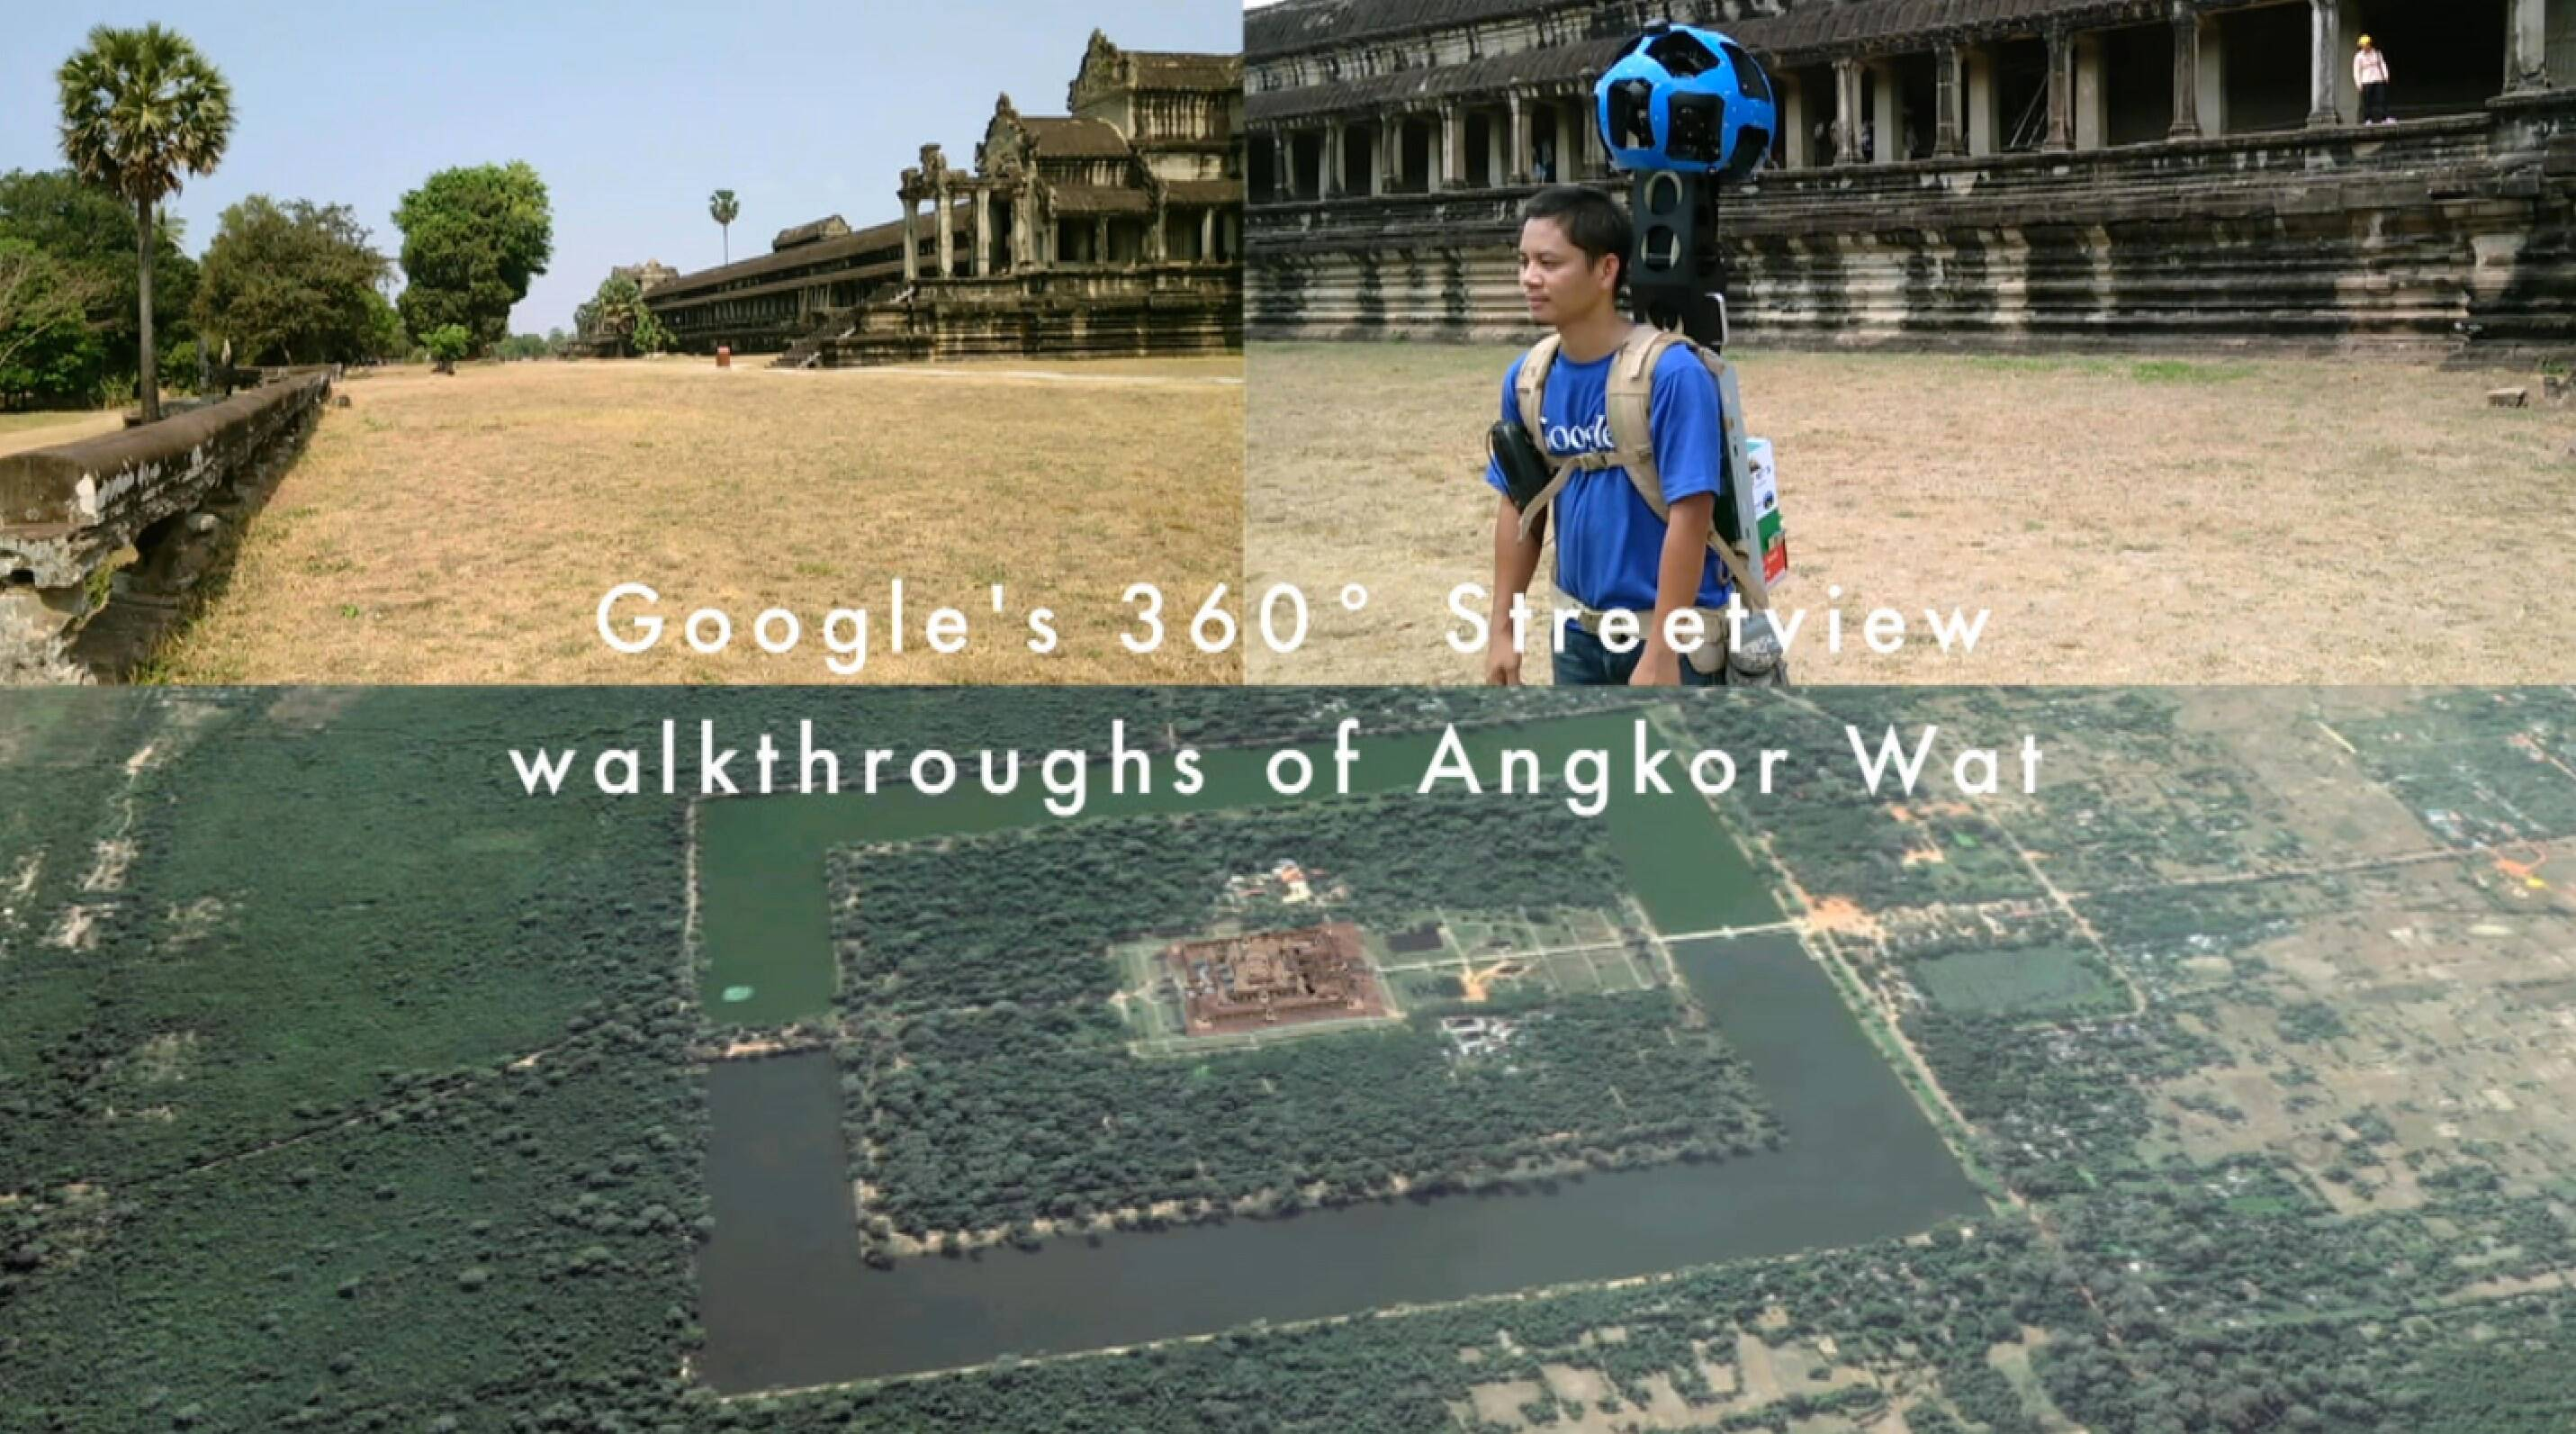 Google launches Streetview of Angkor Wat monuments